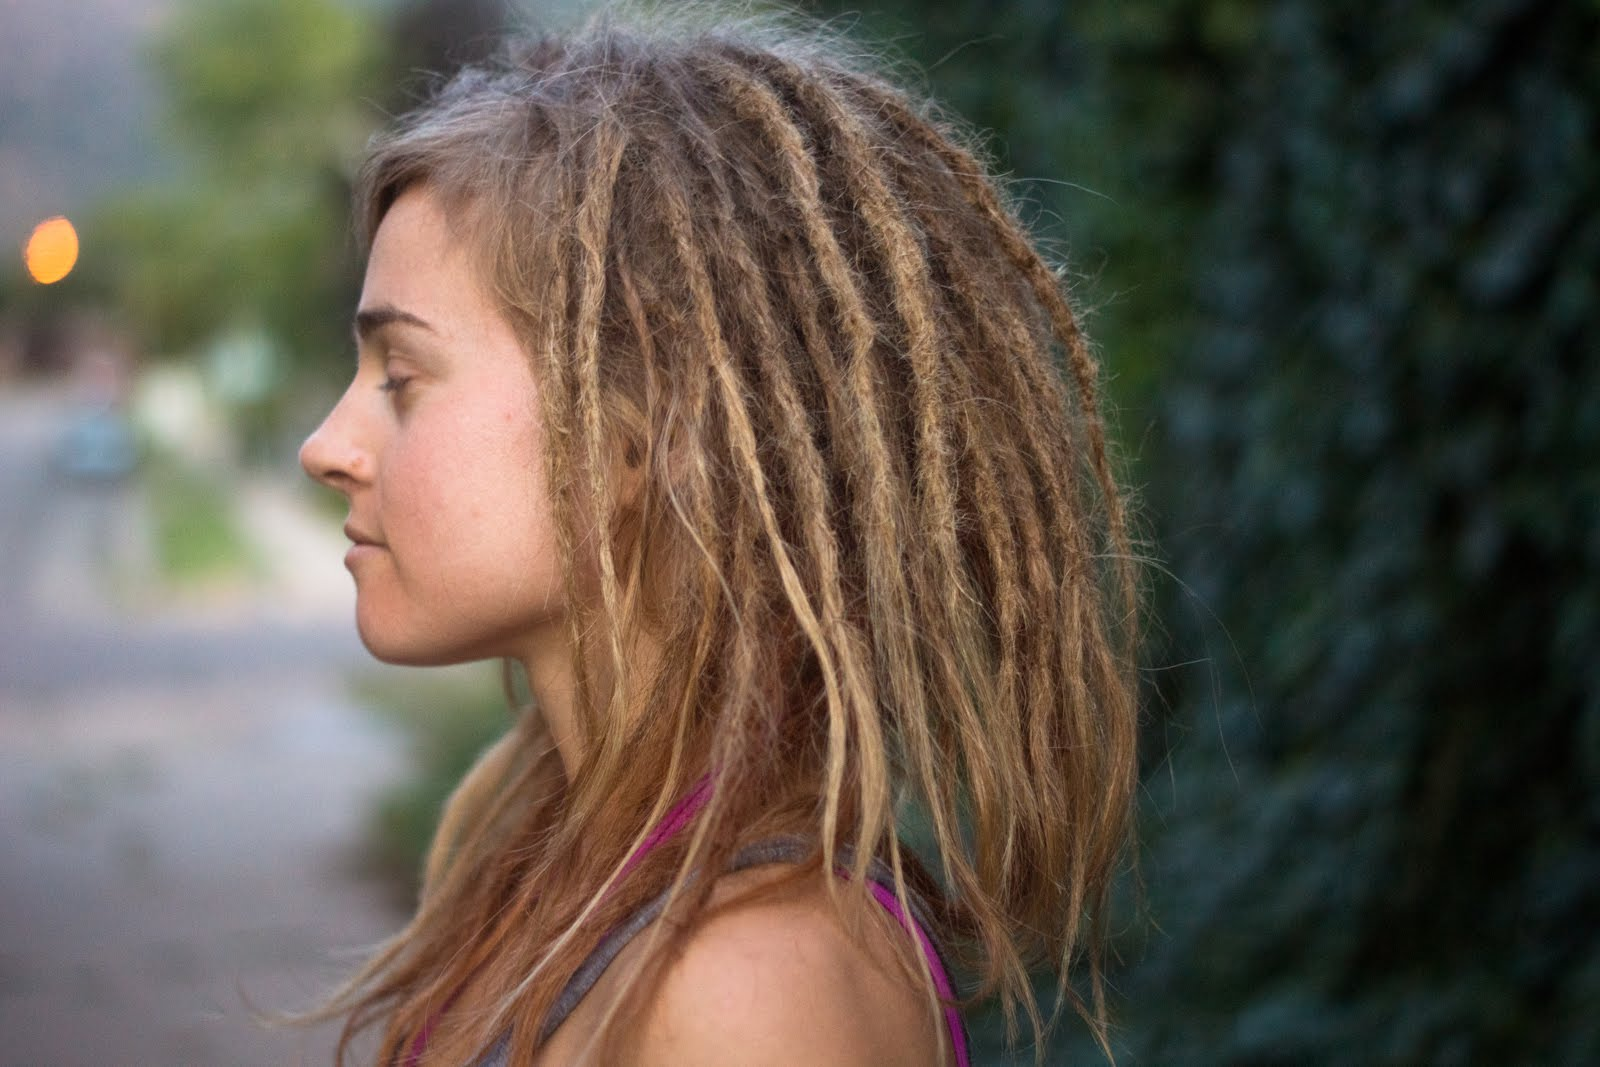 Dreadlocks Wallpapers High Quality Download Free